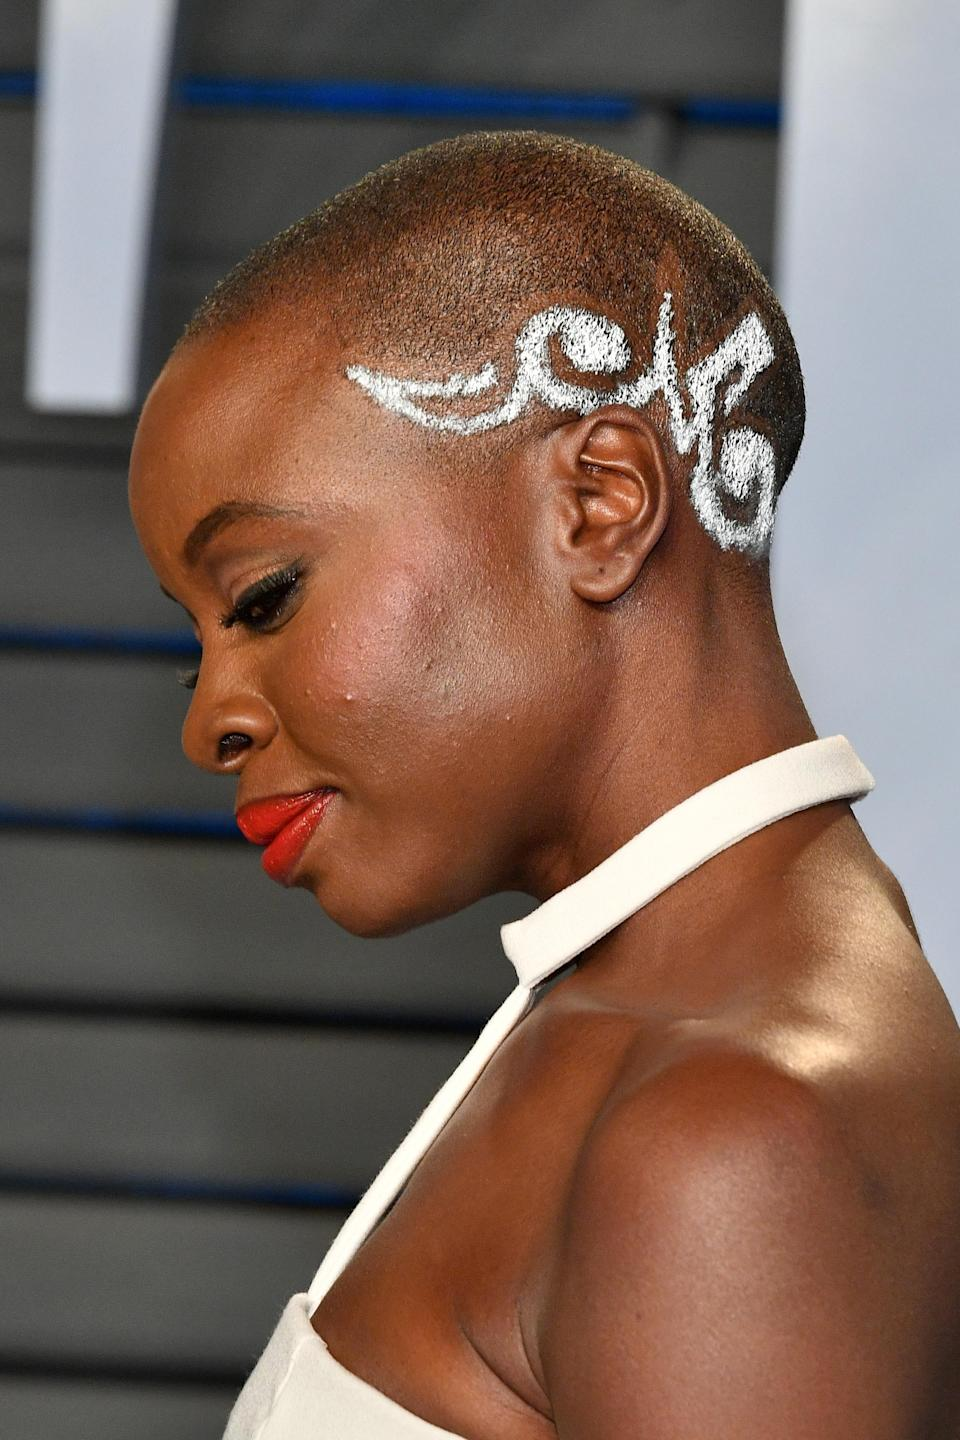 Danai Gurira attended the 2018 Vanity Fair Oscar Party in Beverly Hills, Calif., sporting a buzzcut with an intricate design. (Photo: Getty Images)